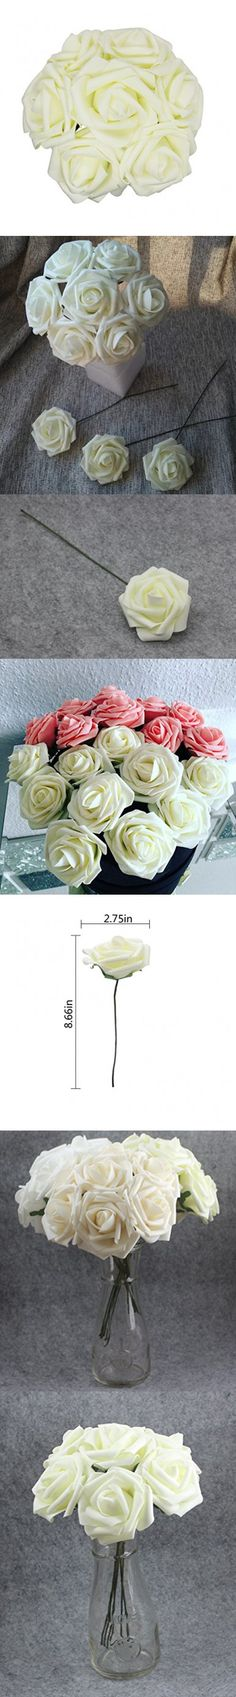 3 Heads Latex Rose Small Buds Artificial Flowers Real Touch Rose Flowers Home Decorations For Wedding Party Or Birthday Always Buy Good Other Mobility & Disability Clothing, Shoes & Accessories